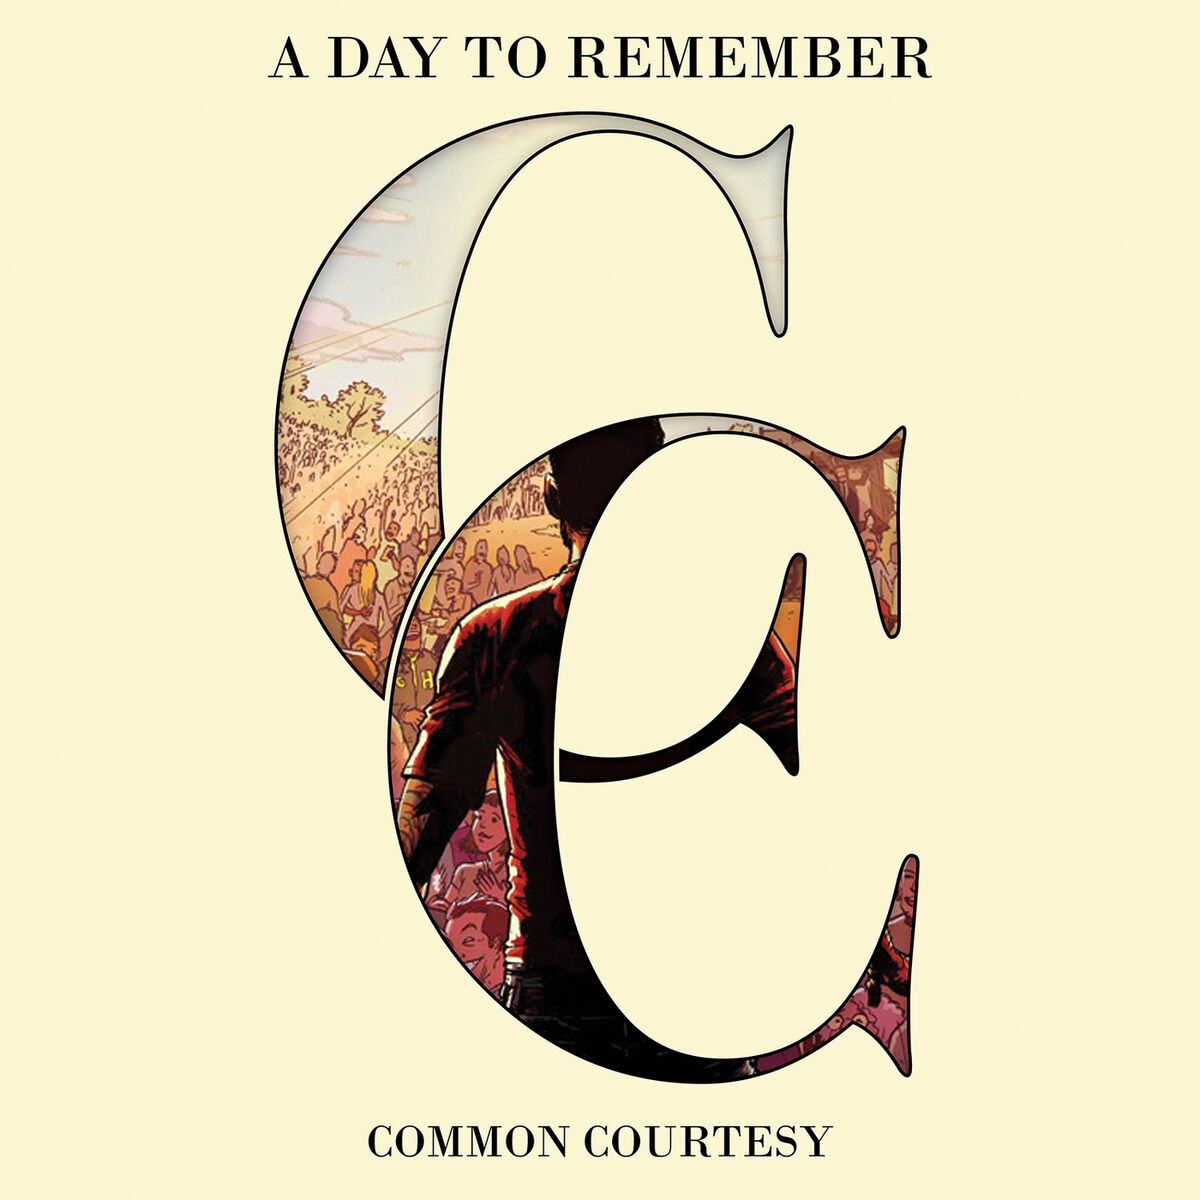 A Day To Remember - Common Courtesy [Deluxe] (2013)